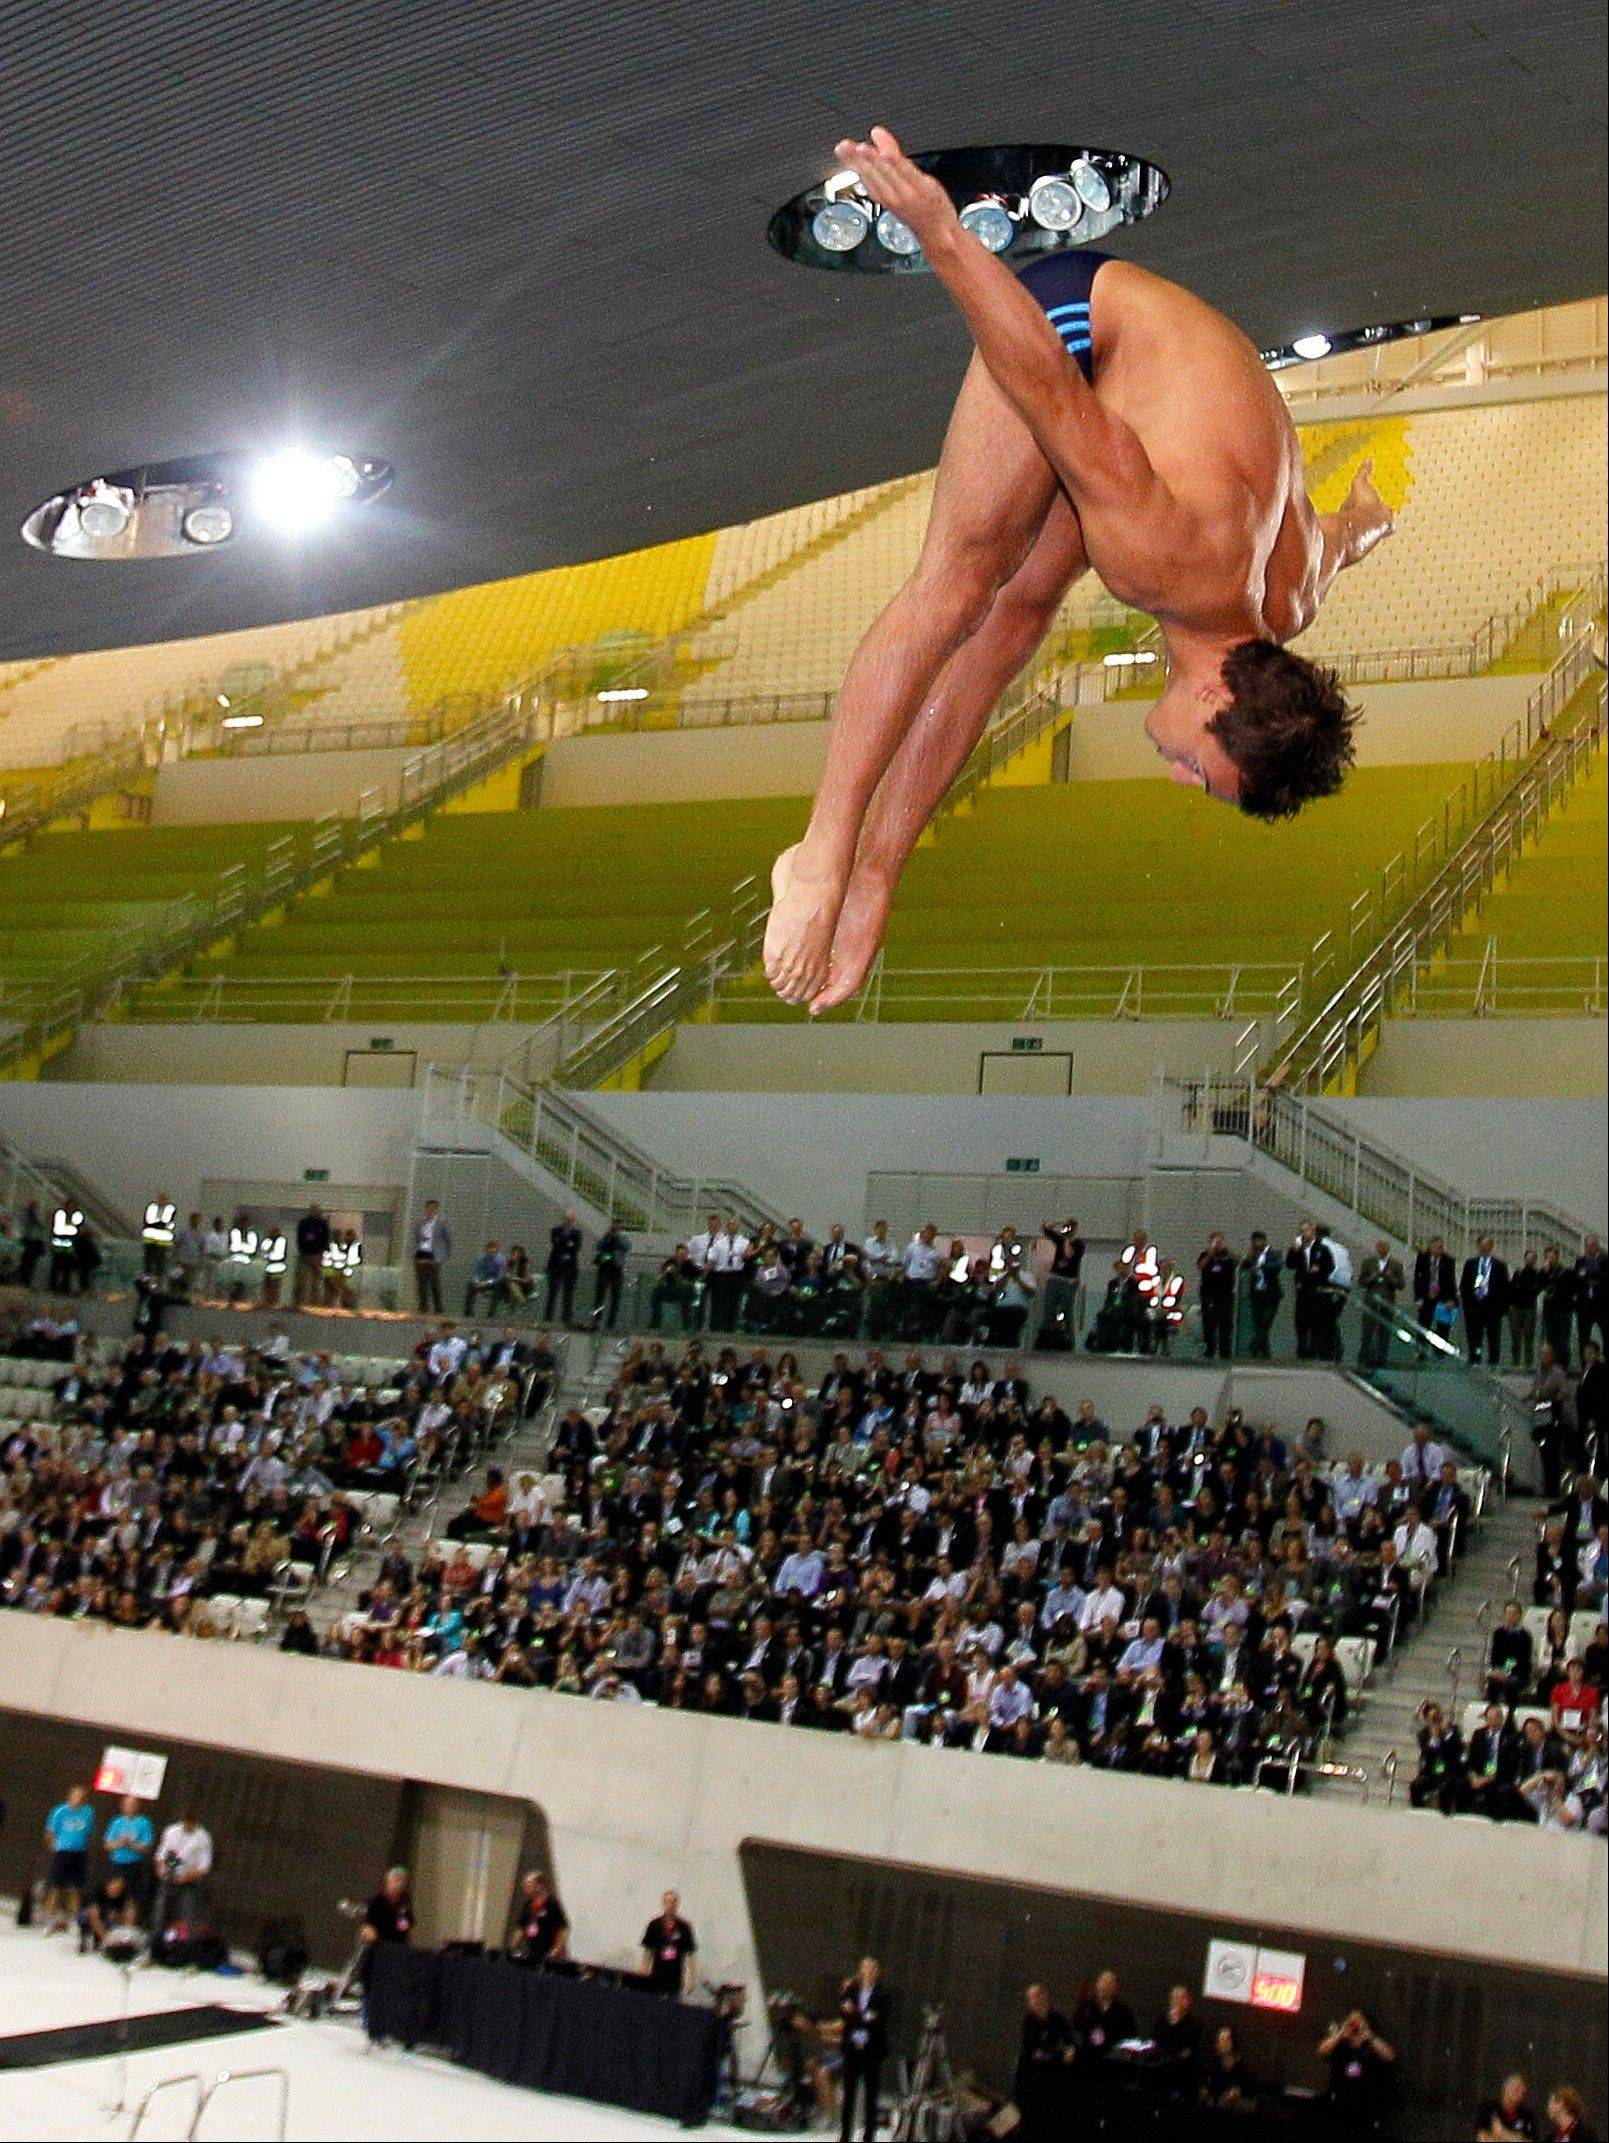 British Olympian Tom Daley performs a dive into the new aquatic centre dive pool at the one-year-to-go ceremony Wednesday in London.